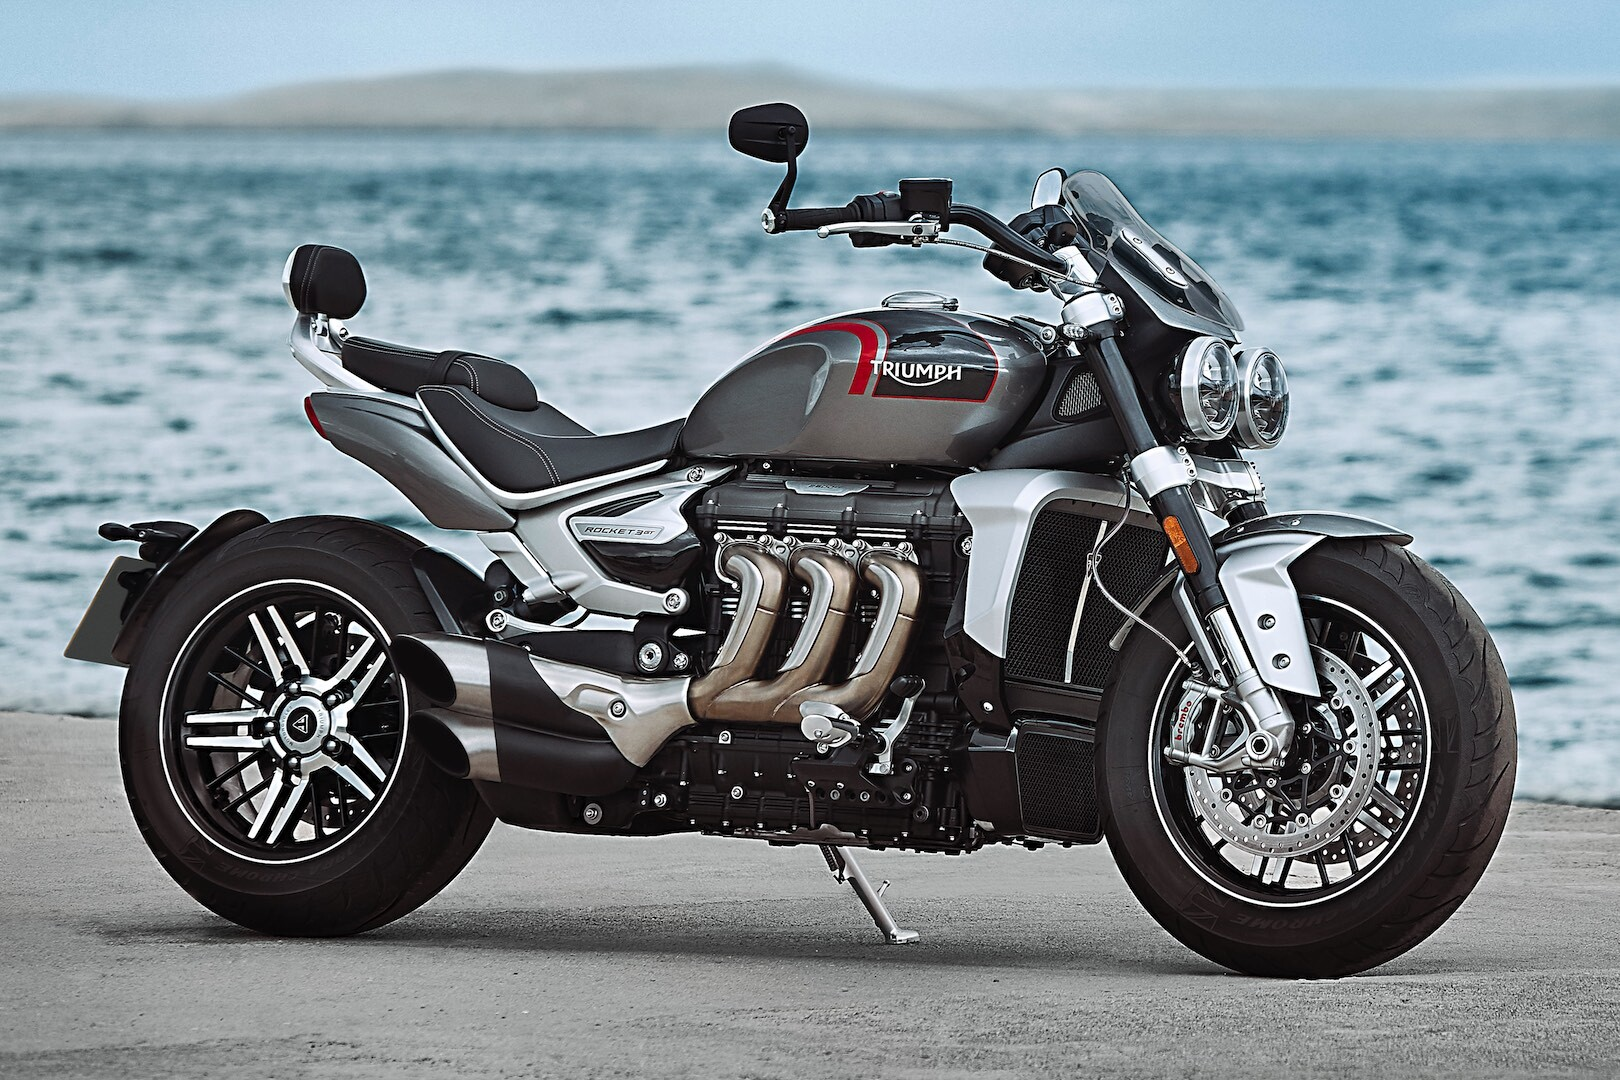 2020-Triumph-Rocket-3-GT-touring-cruiser-motorcycle-9.jpg